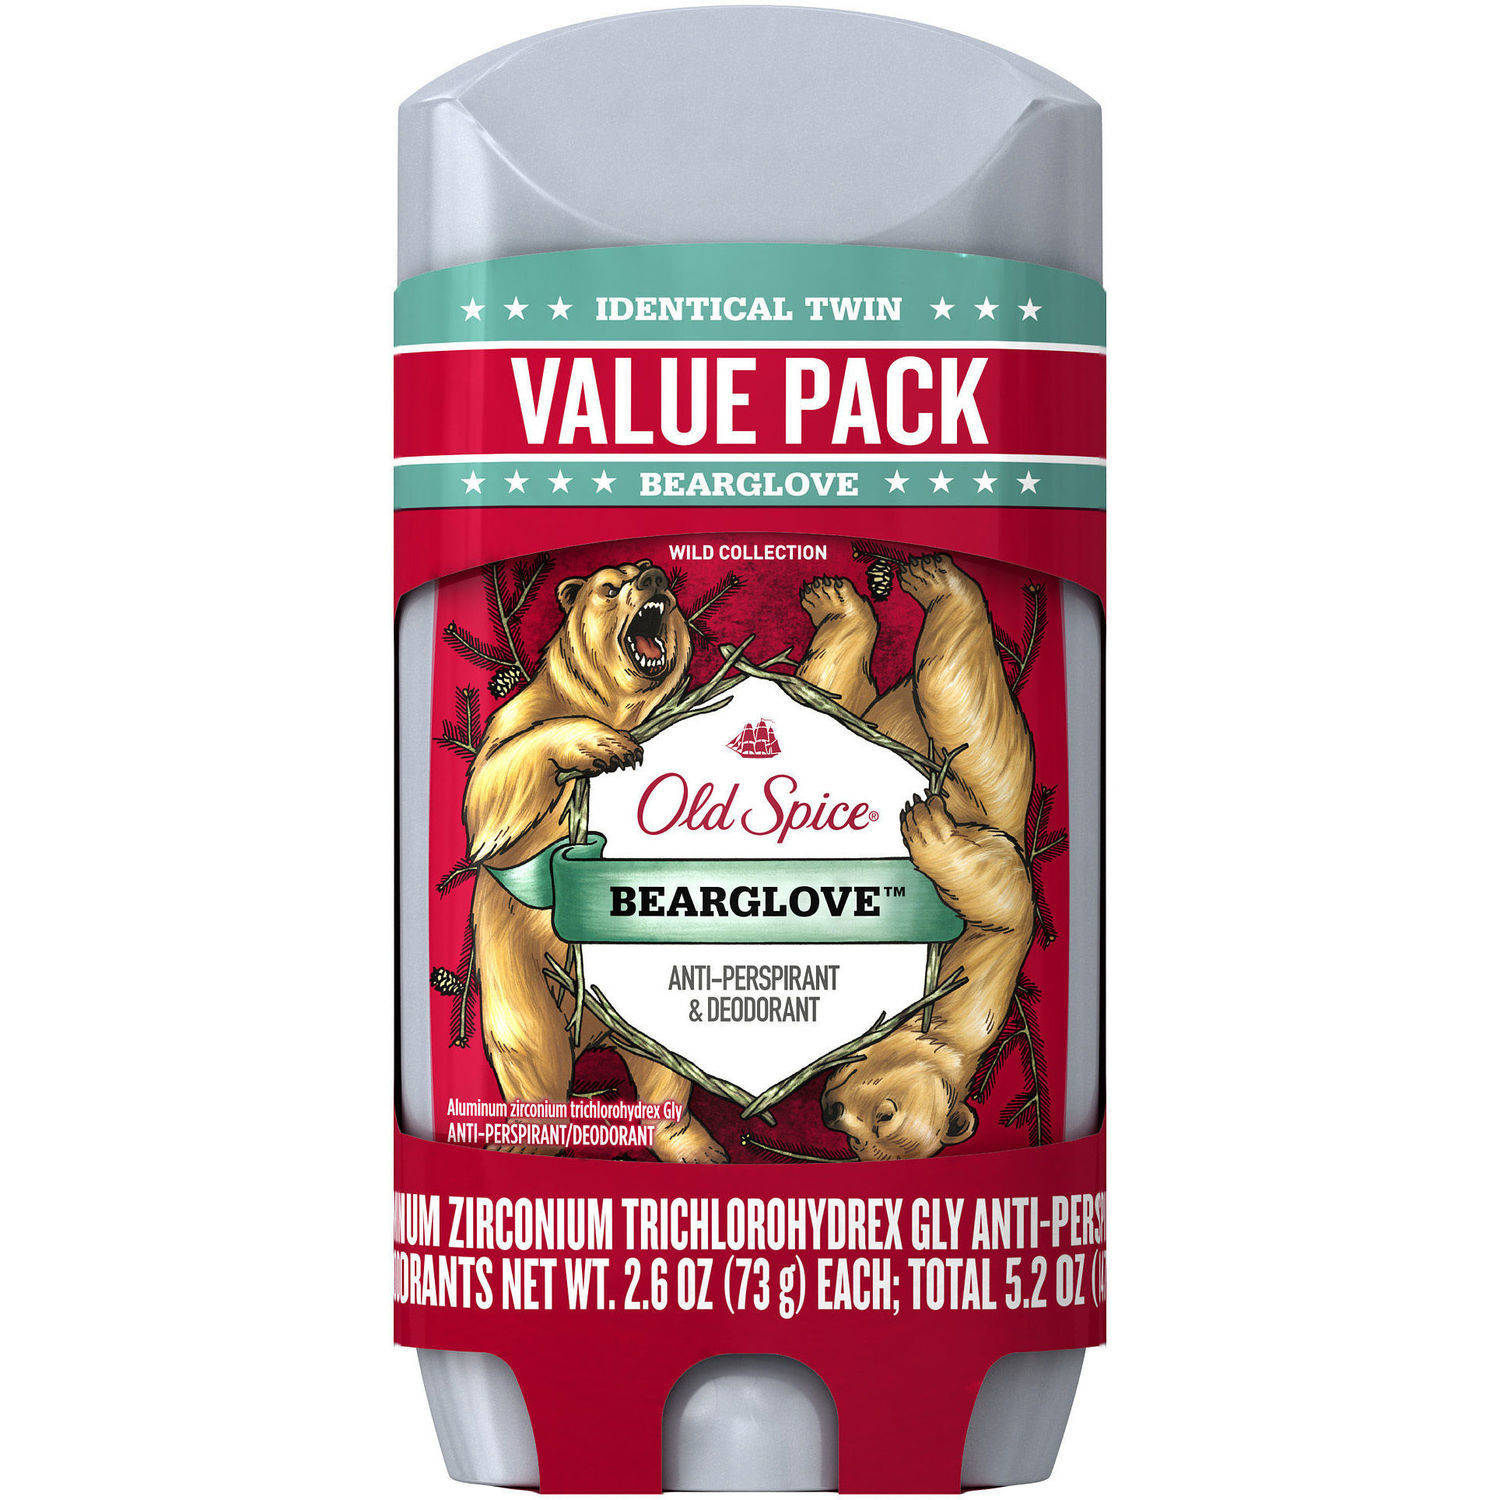 Old Spice Wild Collection Bearglove Invisible Solid Anti-Perspirant & Deodorant, 2.6 oz, 2 count